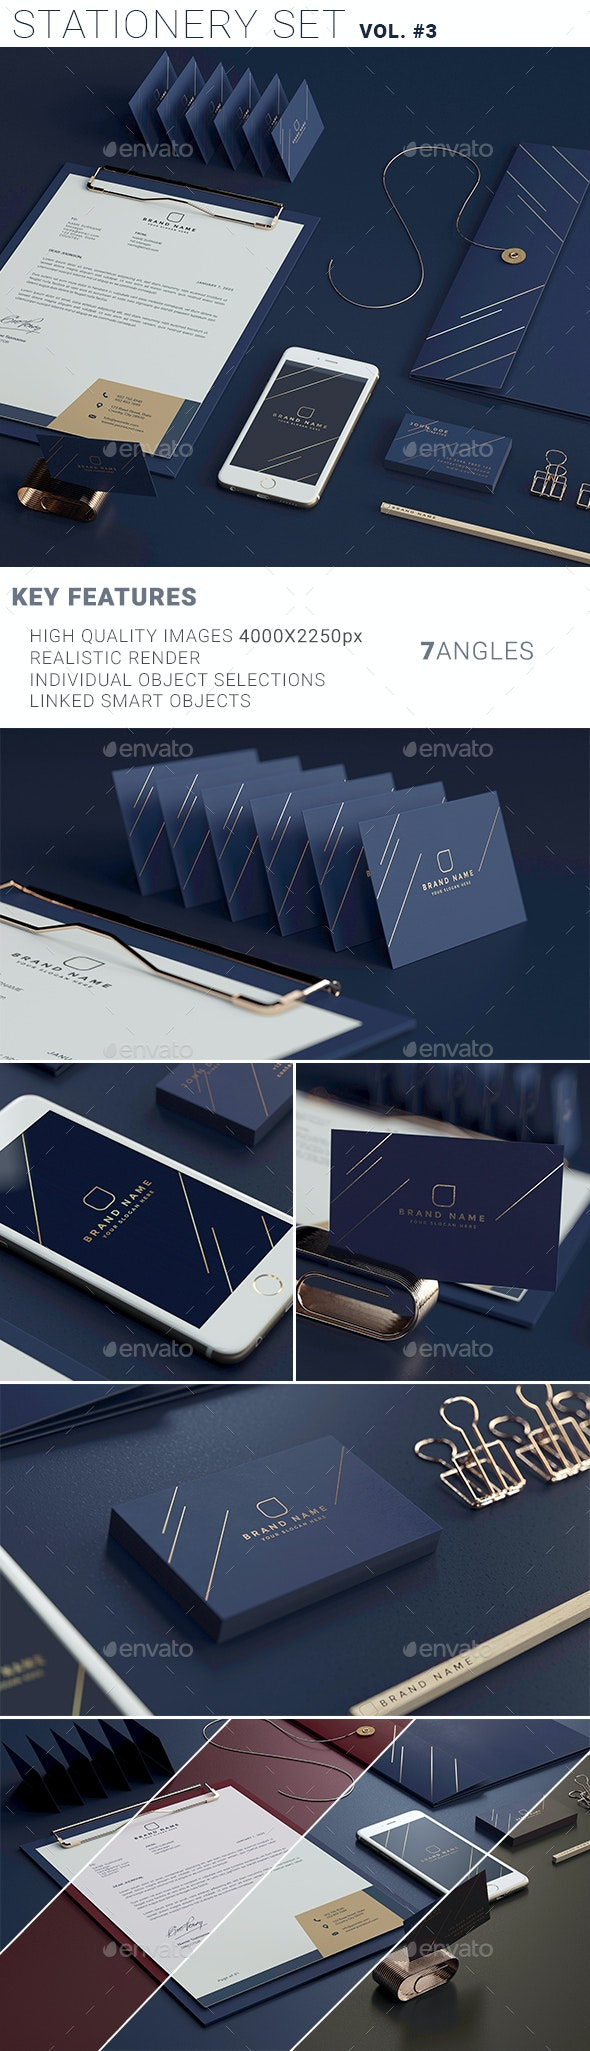 Stationary Branding Mockup vol.3